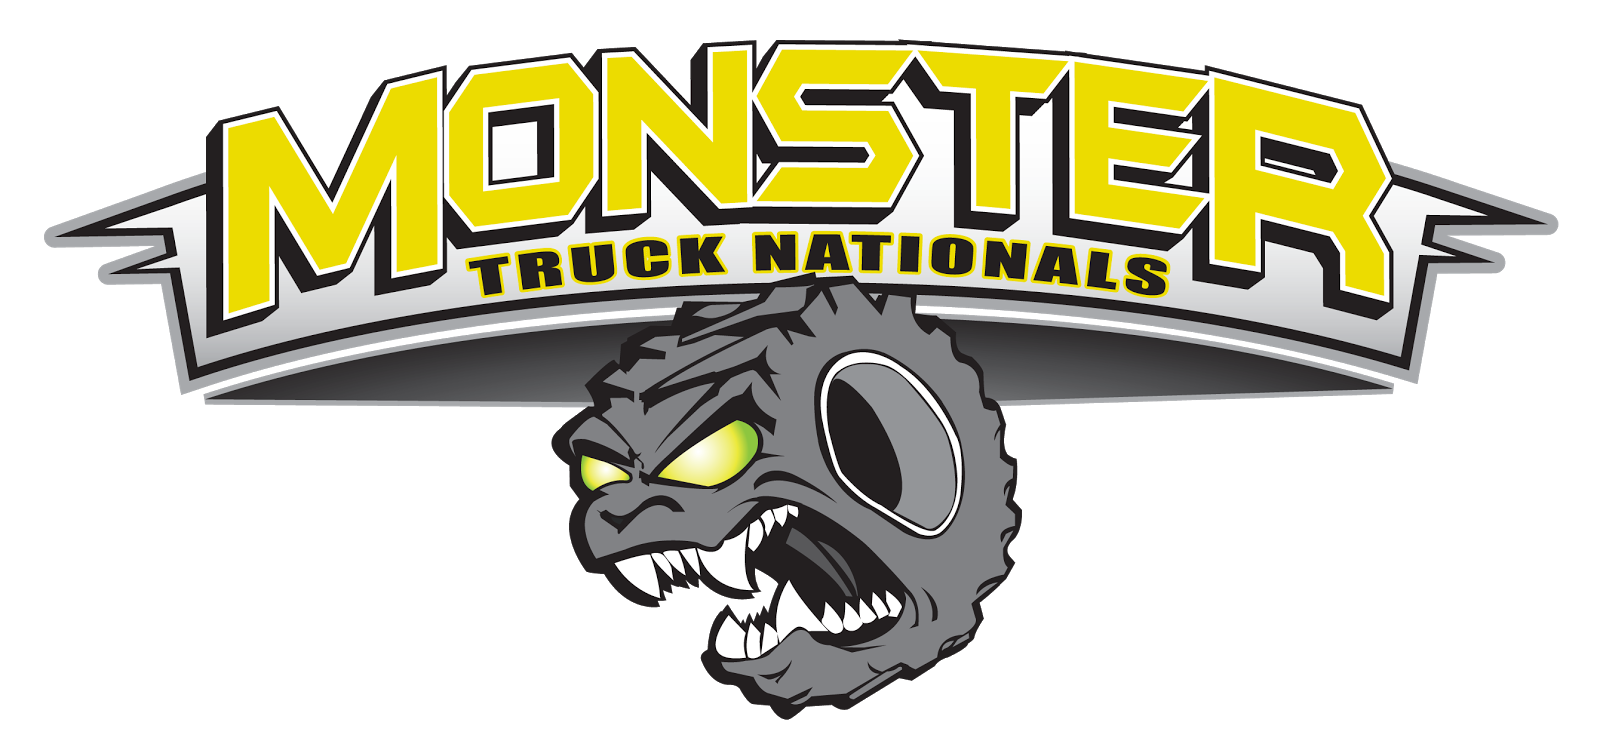 Tickets for Monster Truck Nationals in Missoula from ShowClix